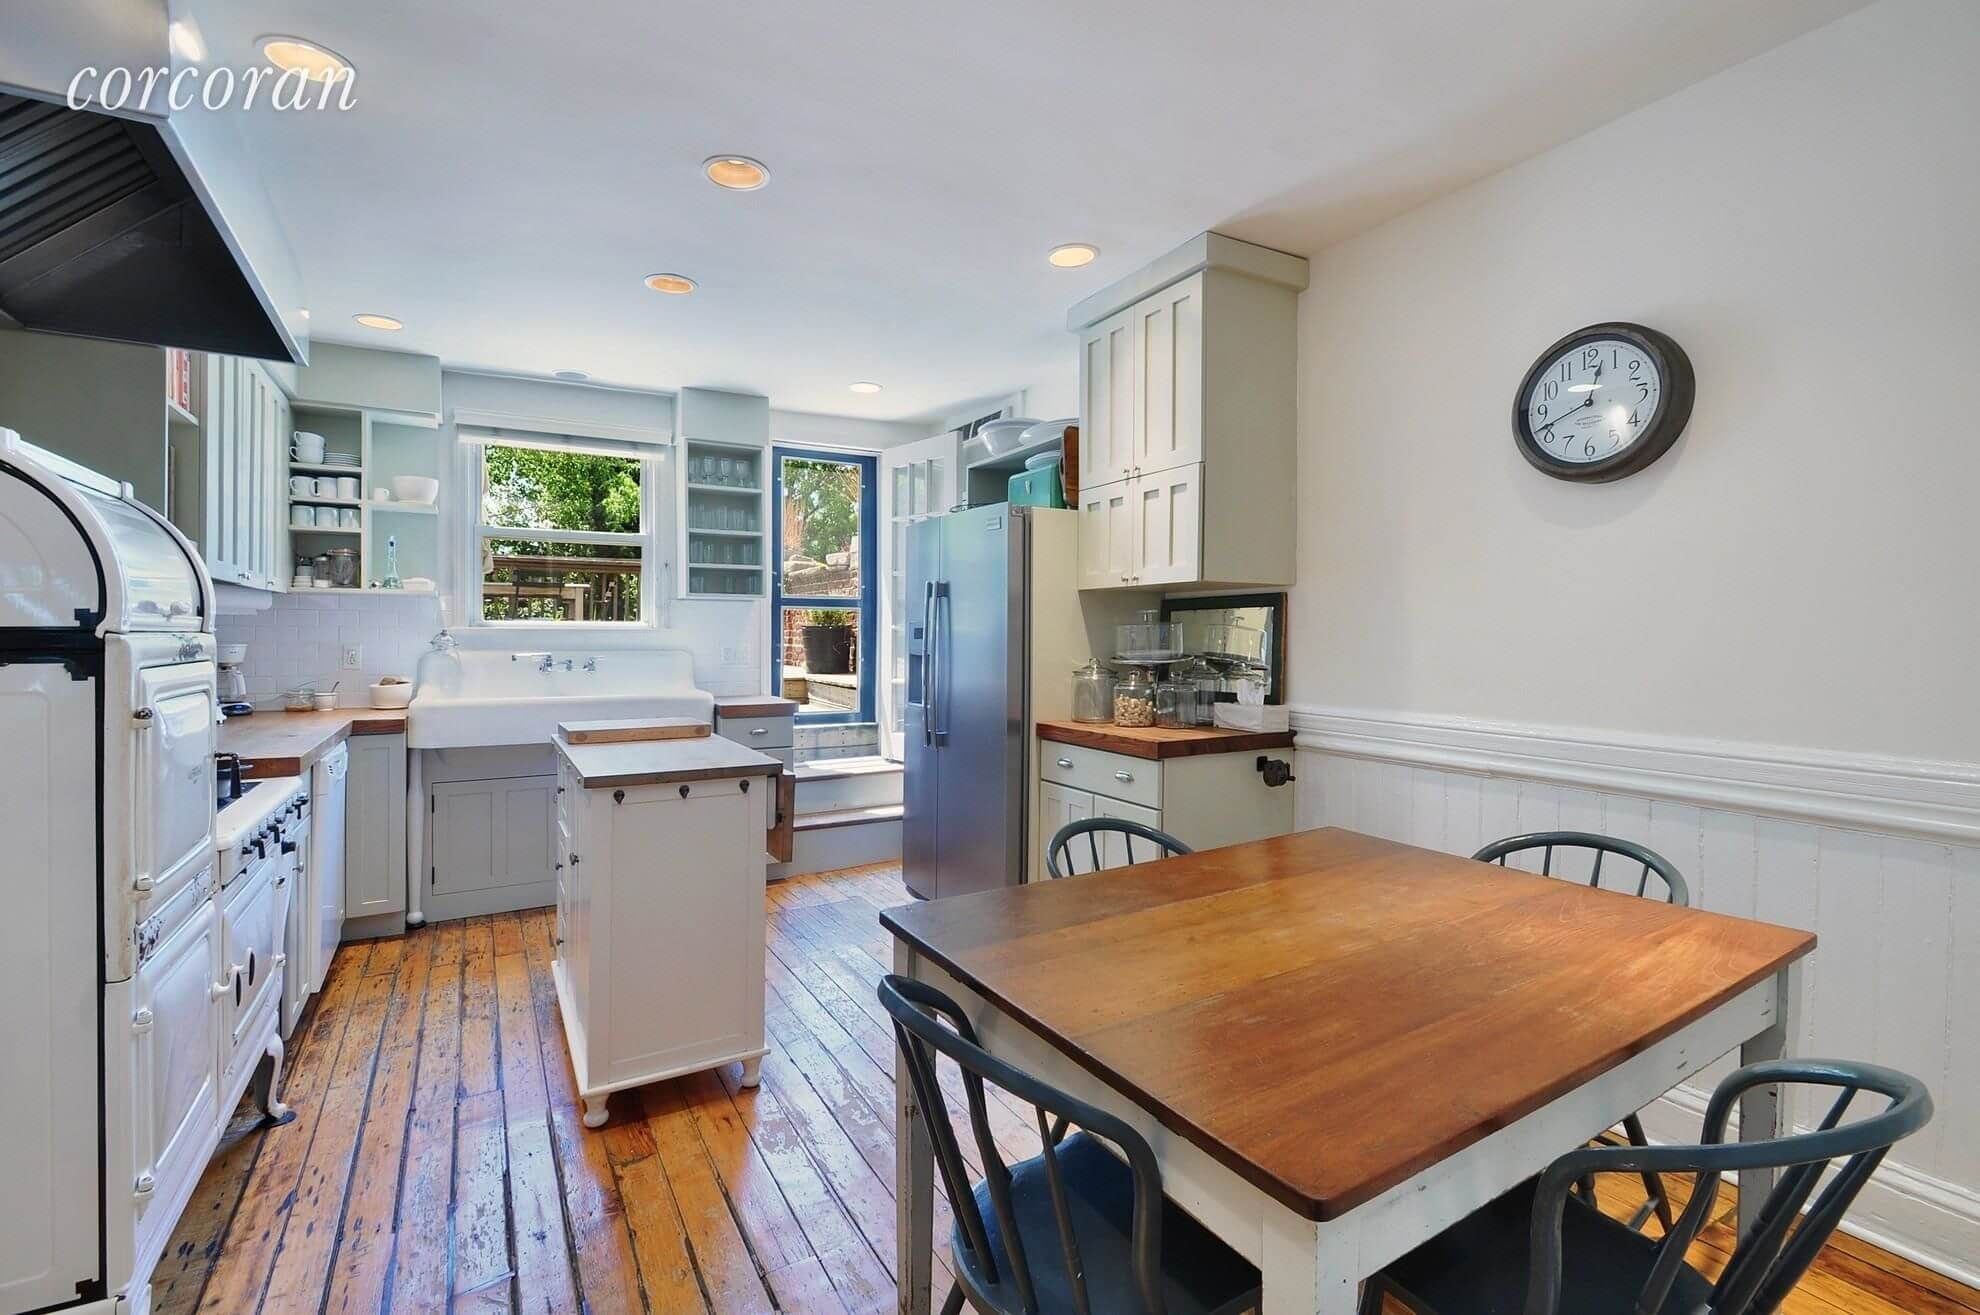 Brooklyn Apartments For Rent In Williamsburg At 62 Grand Street Brooklyn Apartments For Rent Home Brooklyn Apartment